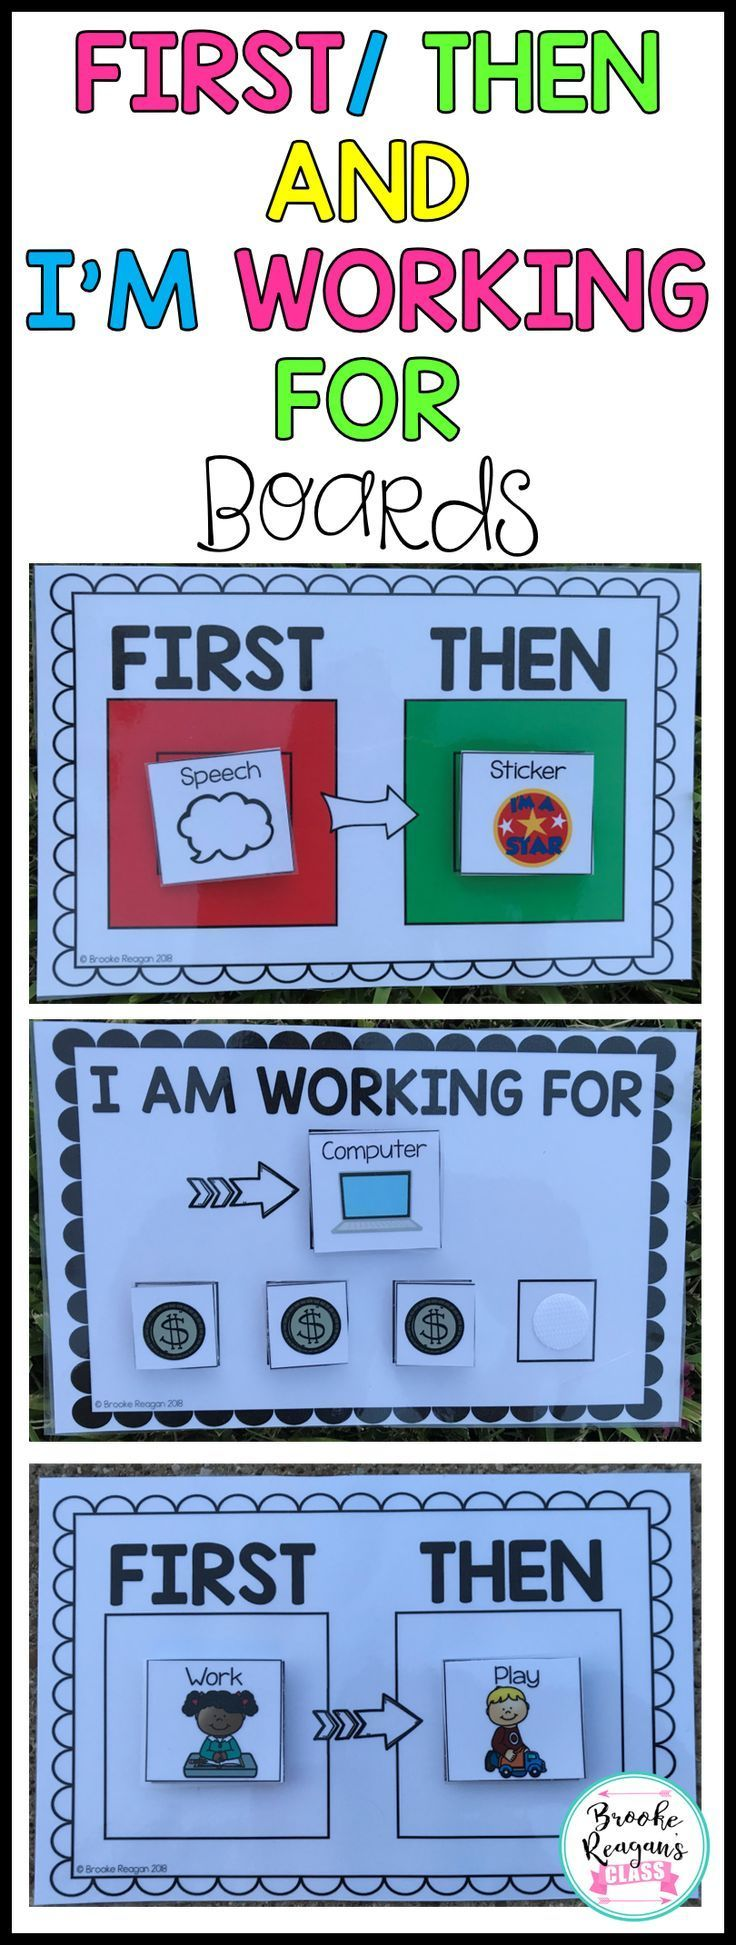 First/ Then and I am Working for Boards for Particular Schooling